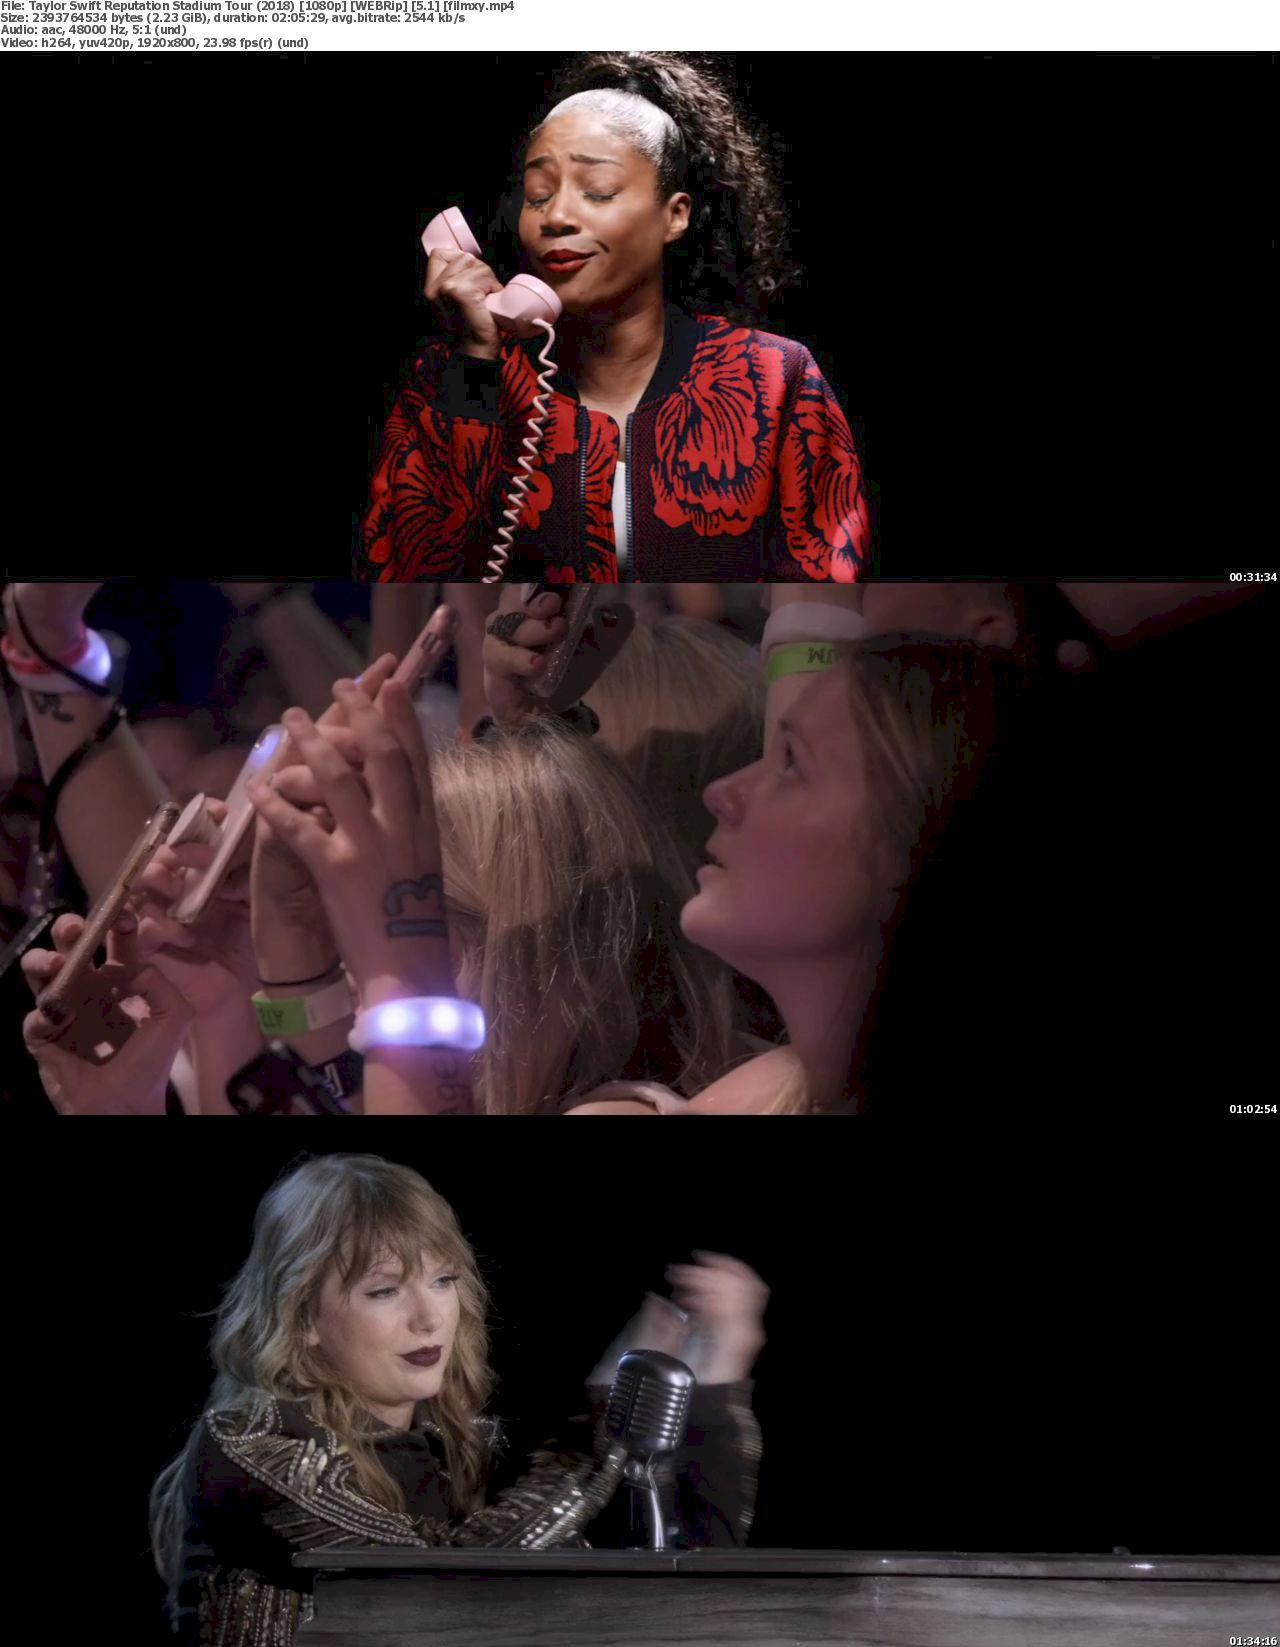 Taylor Swift: Reputation Stadium Tour (2018) |1080p Screenshot